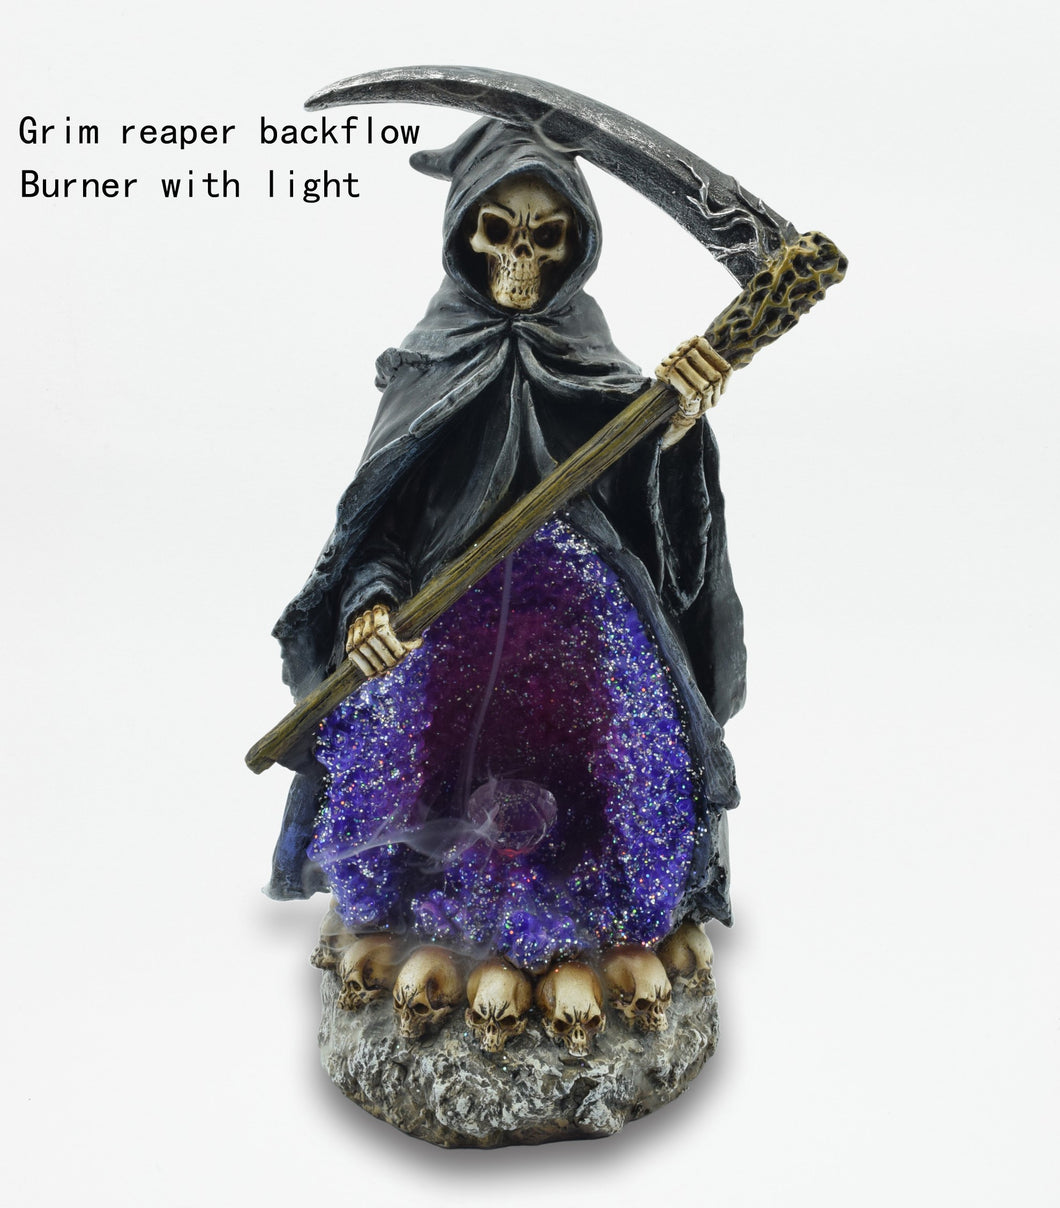 GRIM REAPER PURPLE CRYSTAL BACK FLOW BURNER W/LED